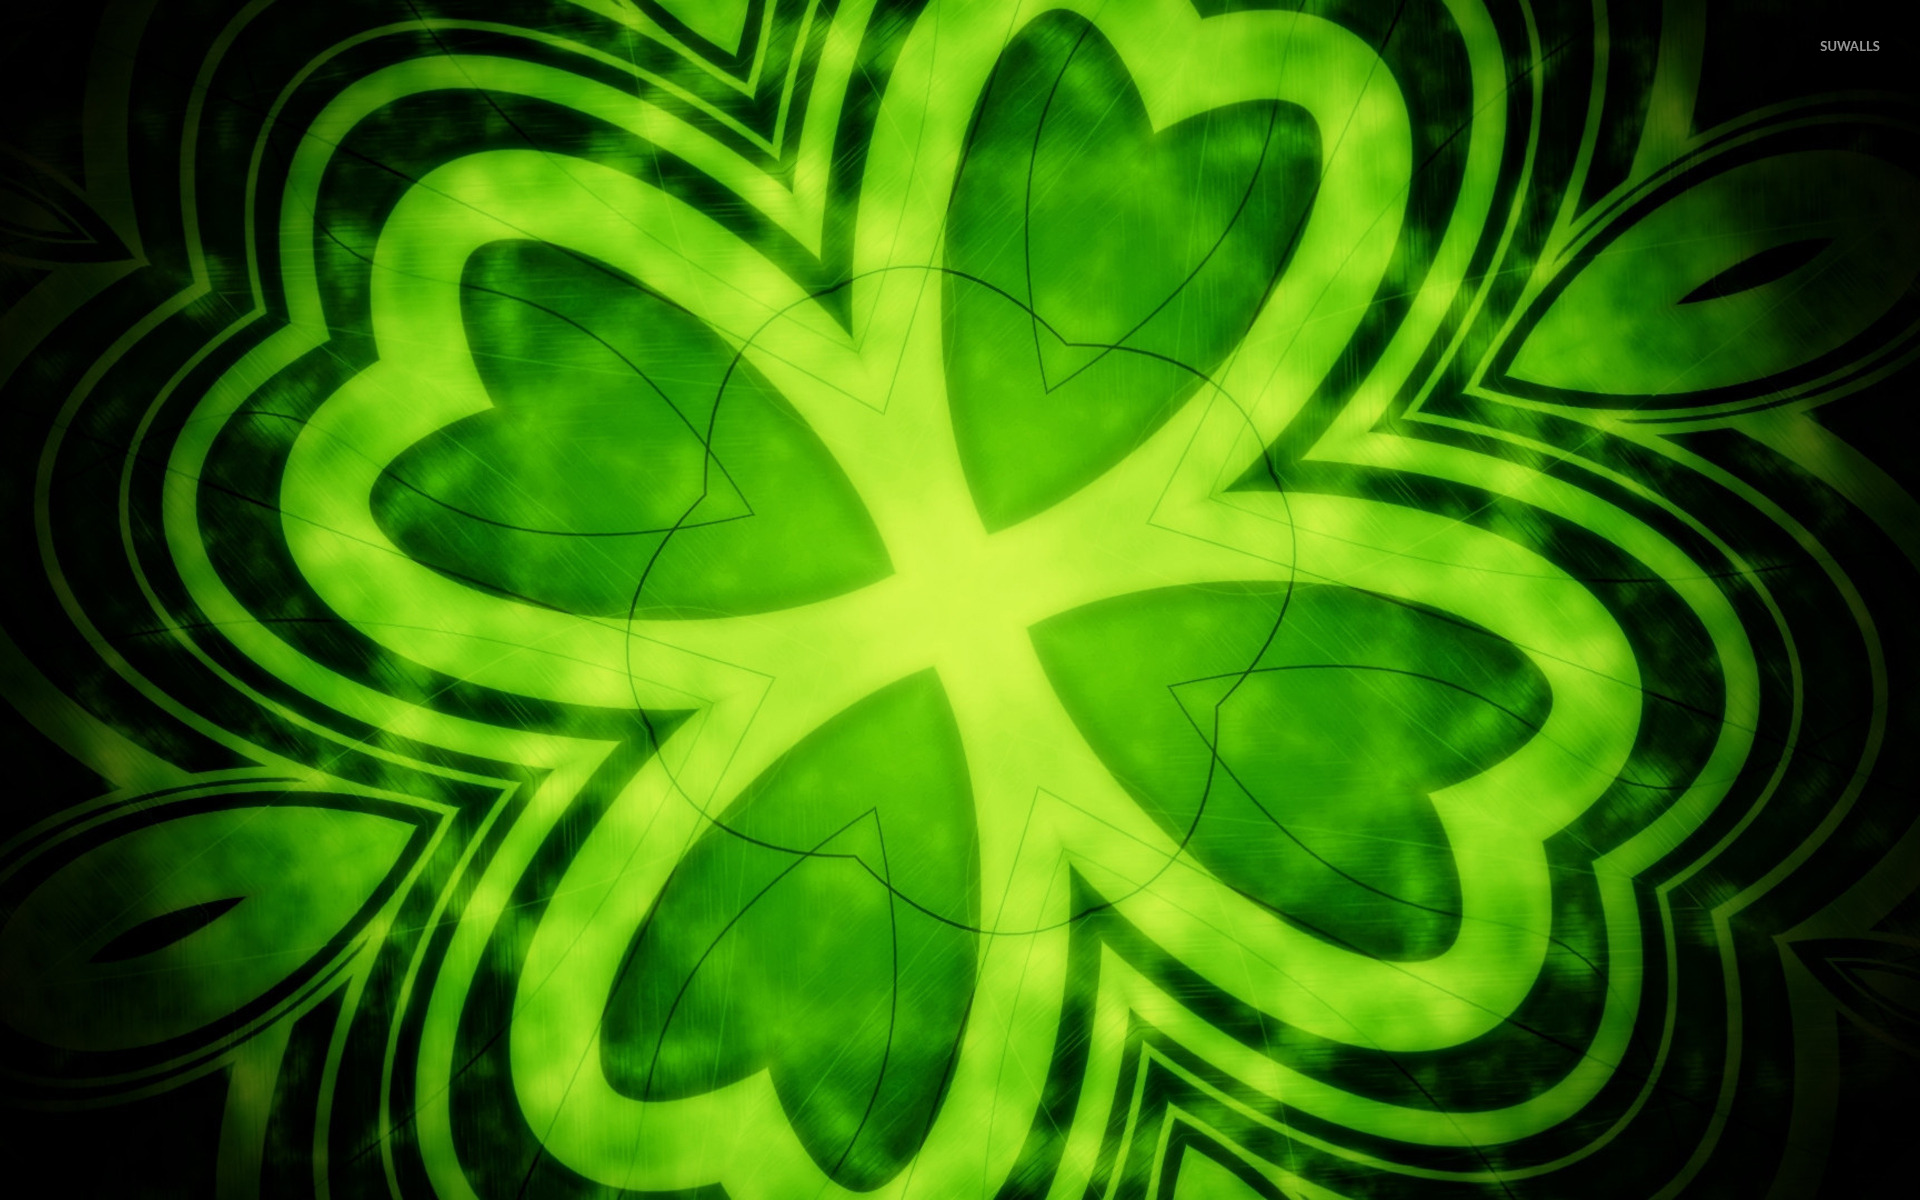 Four leaf clover wallpaper - Abstract wallpapers - #14202